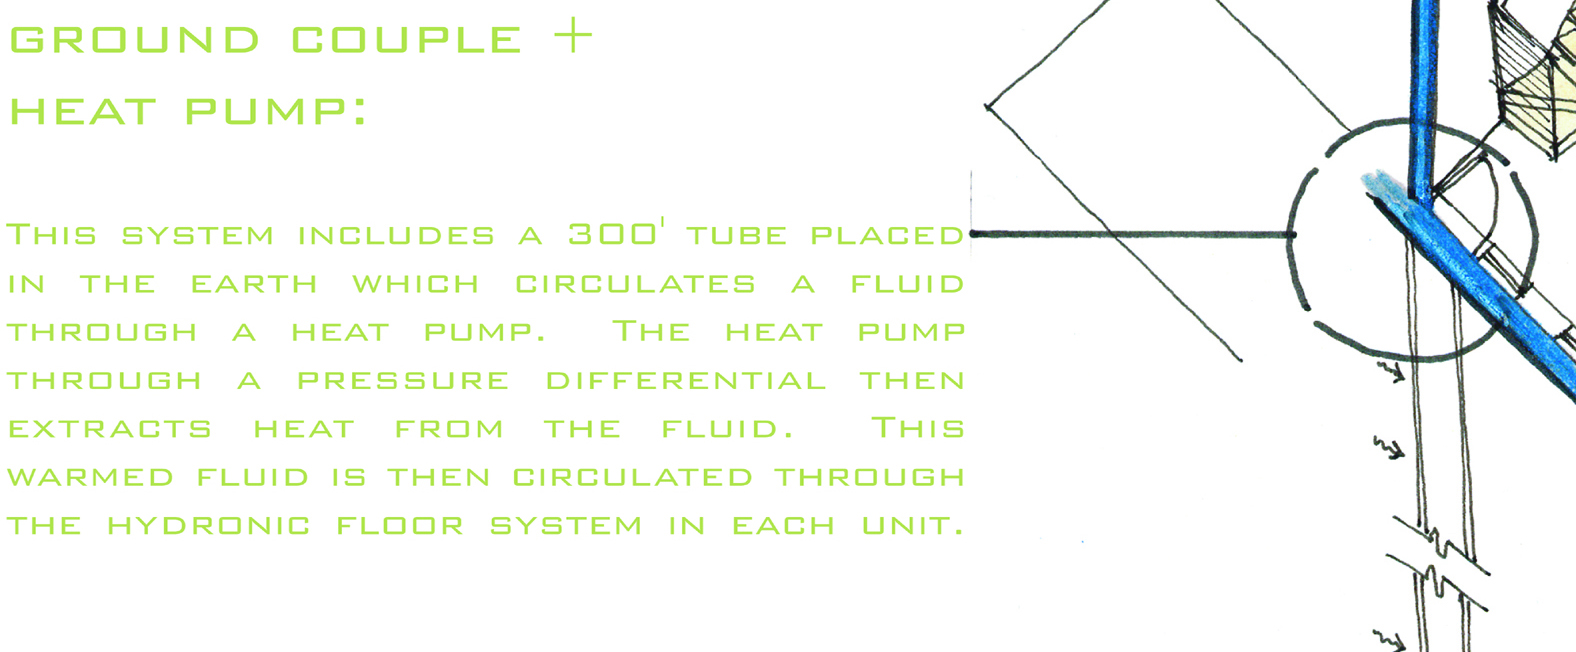 A ground-source heat pump may be an appropriate system to consider for your project. Geothermal energy is much more efficient than a traditional gas furnace, because it is simply transferring heat from the ground through water circulating through pipes, rather than burning fuel. The heat is then carried to pumps where it's concentrated and delivered as warm, comfortable air throughout your home.Geothermal units are also very quiet, and like green roofs, offer energy savings that offset the cost of installation in a short period of time.